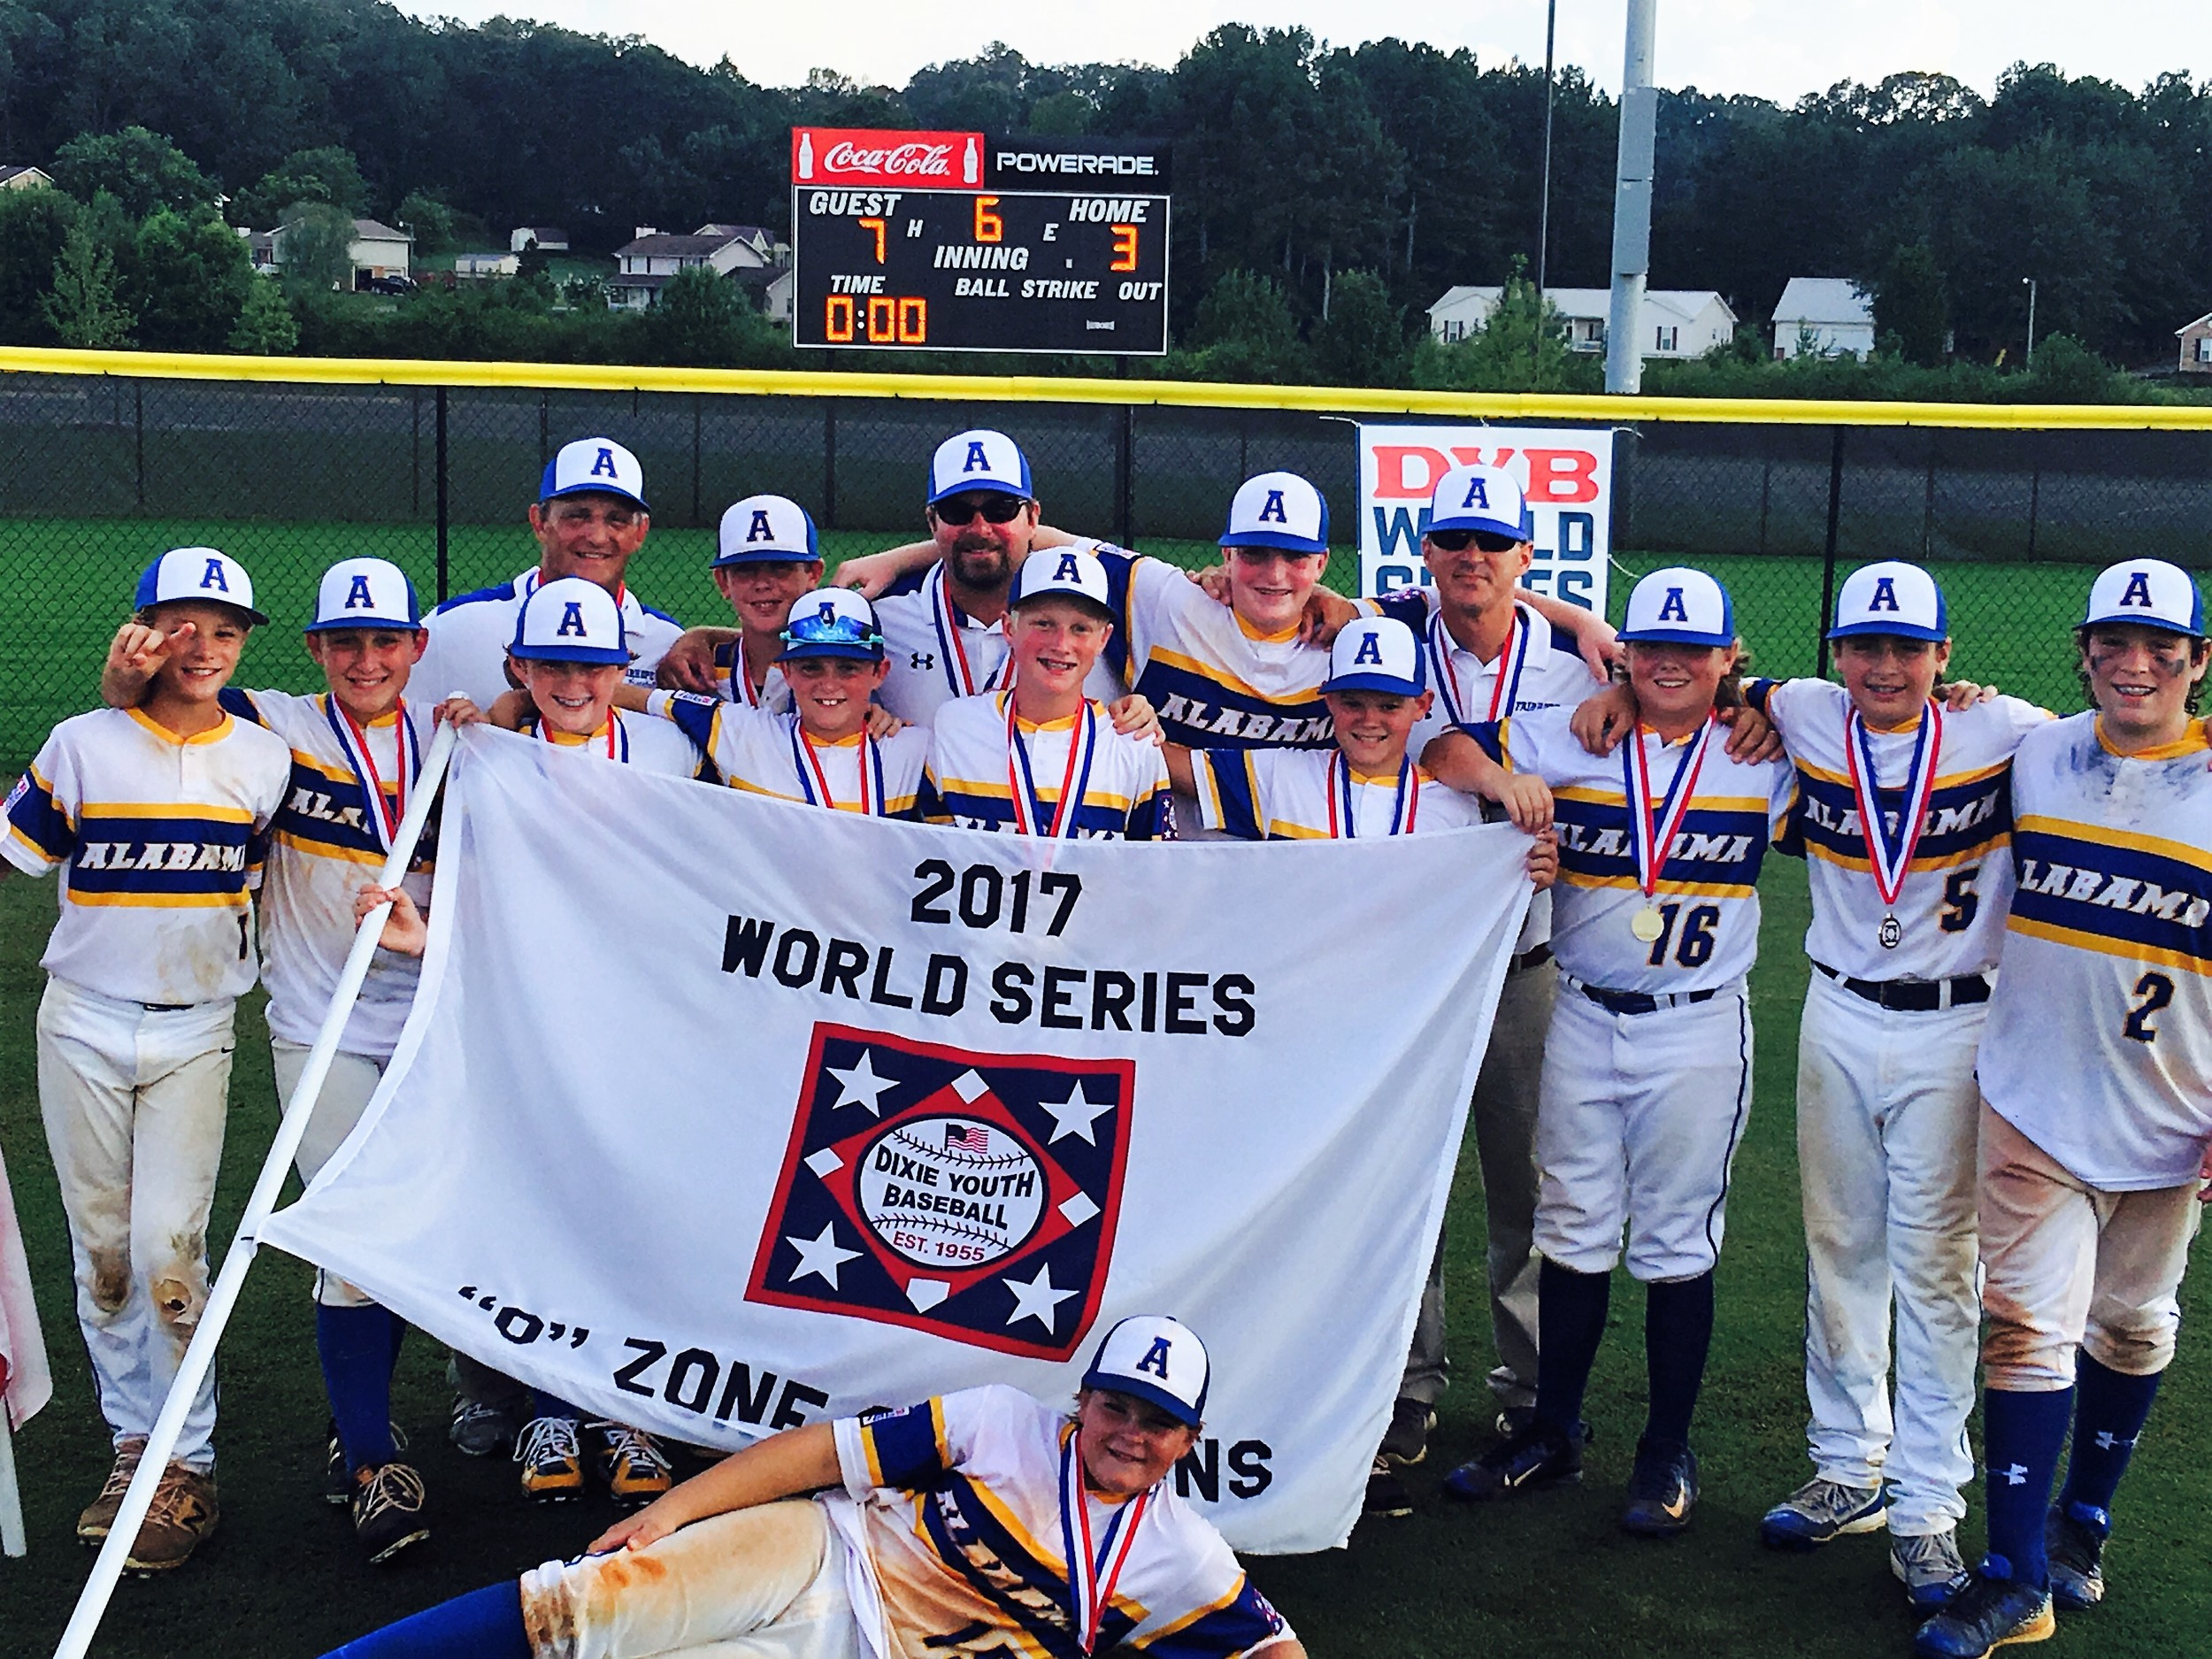 World Champs! Team Alabama - Fairhope American Ozone All Stars with 2017 championship banner and trophy. The team members include: Brooks Brasfield, Hollon Brock, Mikael Bryant, Caden Creel, Cory DeVole, Josh Gunther, Jackson Hatcher, John Malone, Riley Malone, Cade Morris, Gatlin Pitts and Steele Sims. The team is led by manager Andy Malone and assistant coaches Mike Pitts and Ryan Creel.